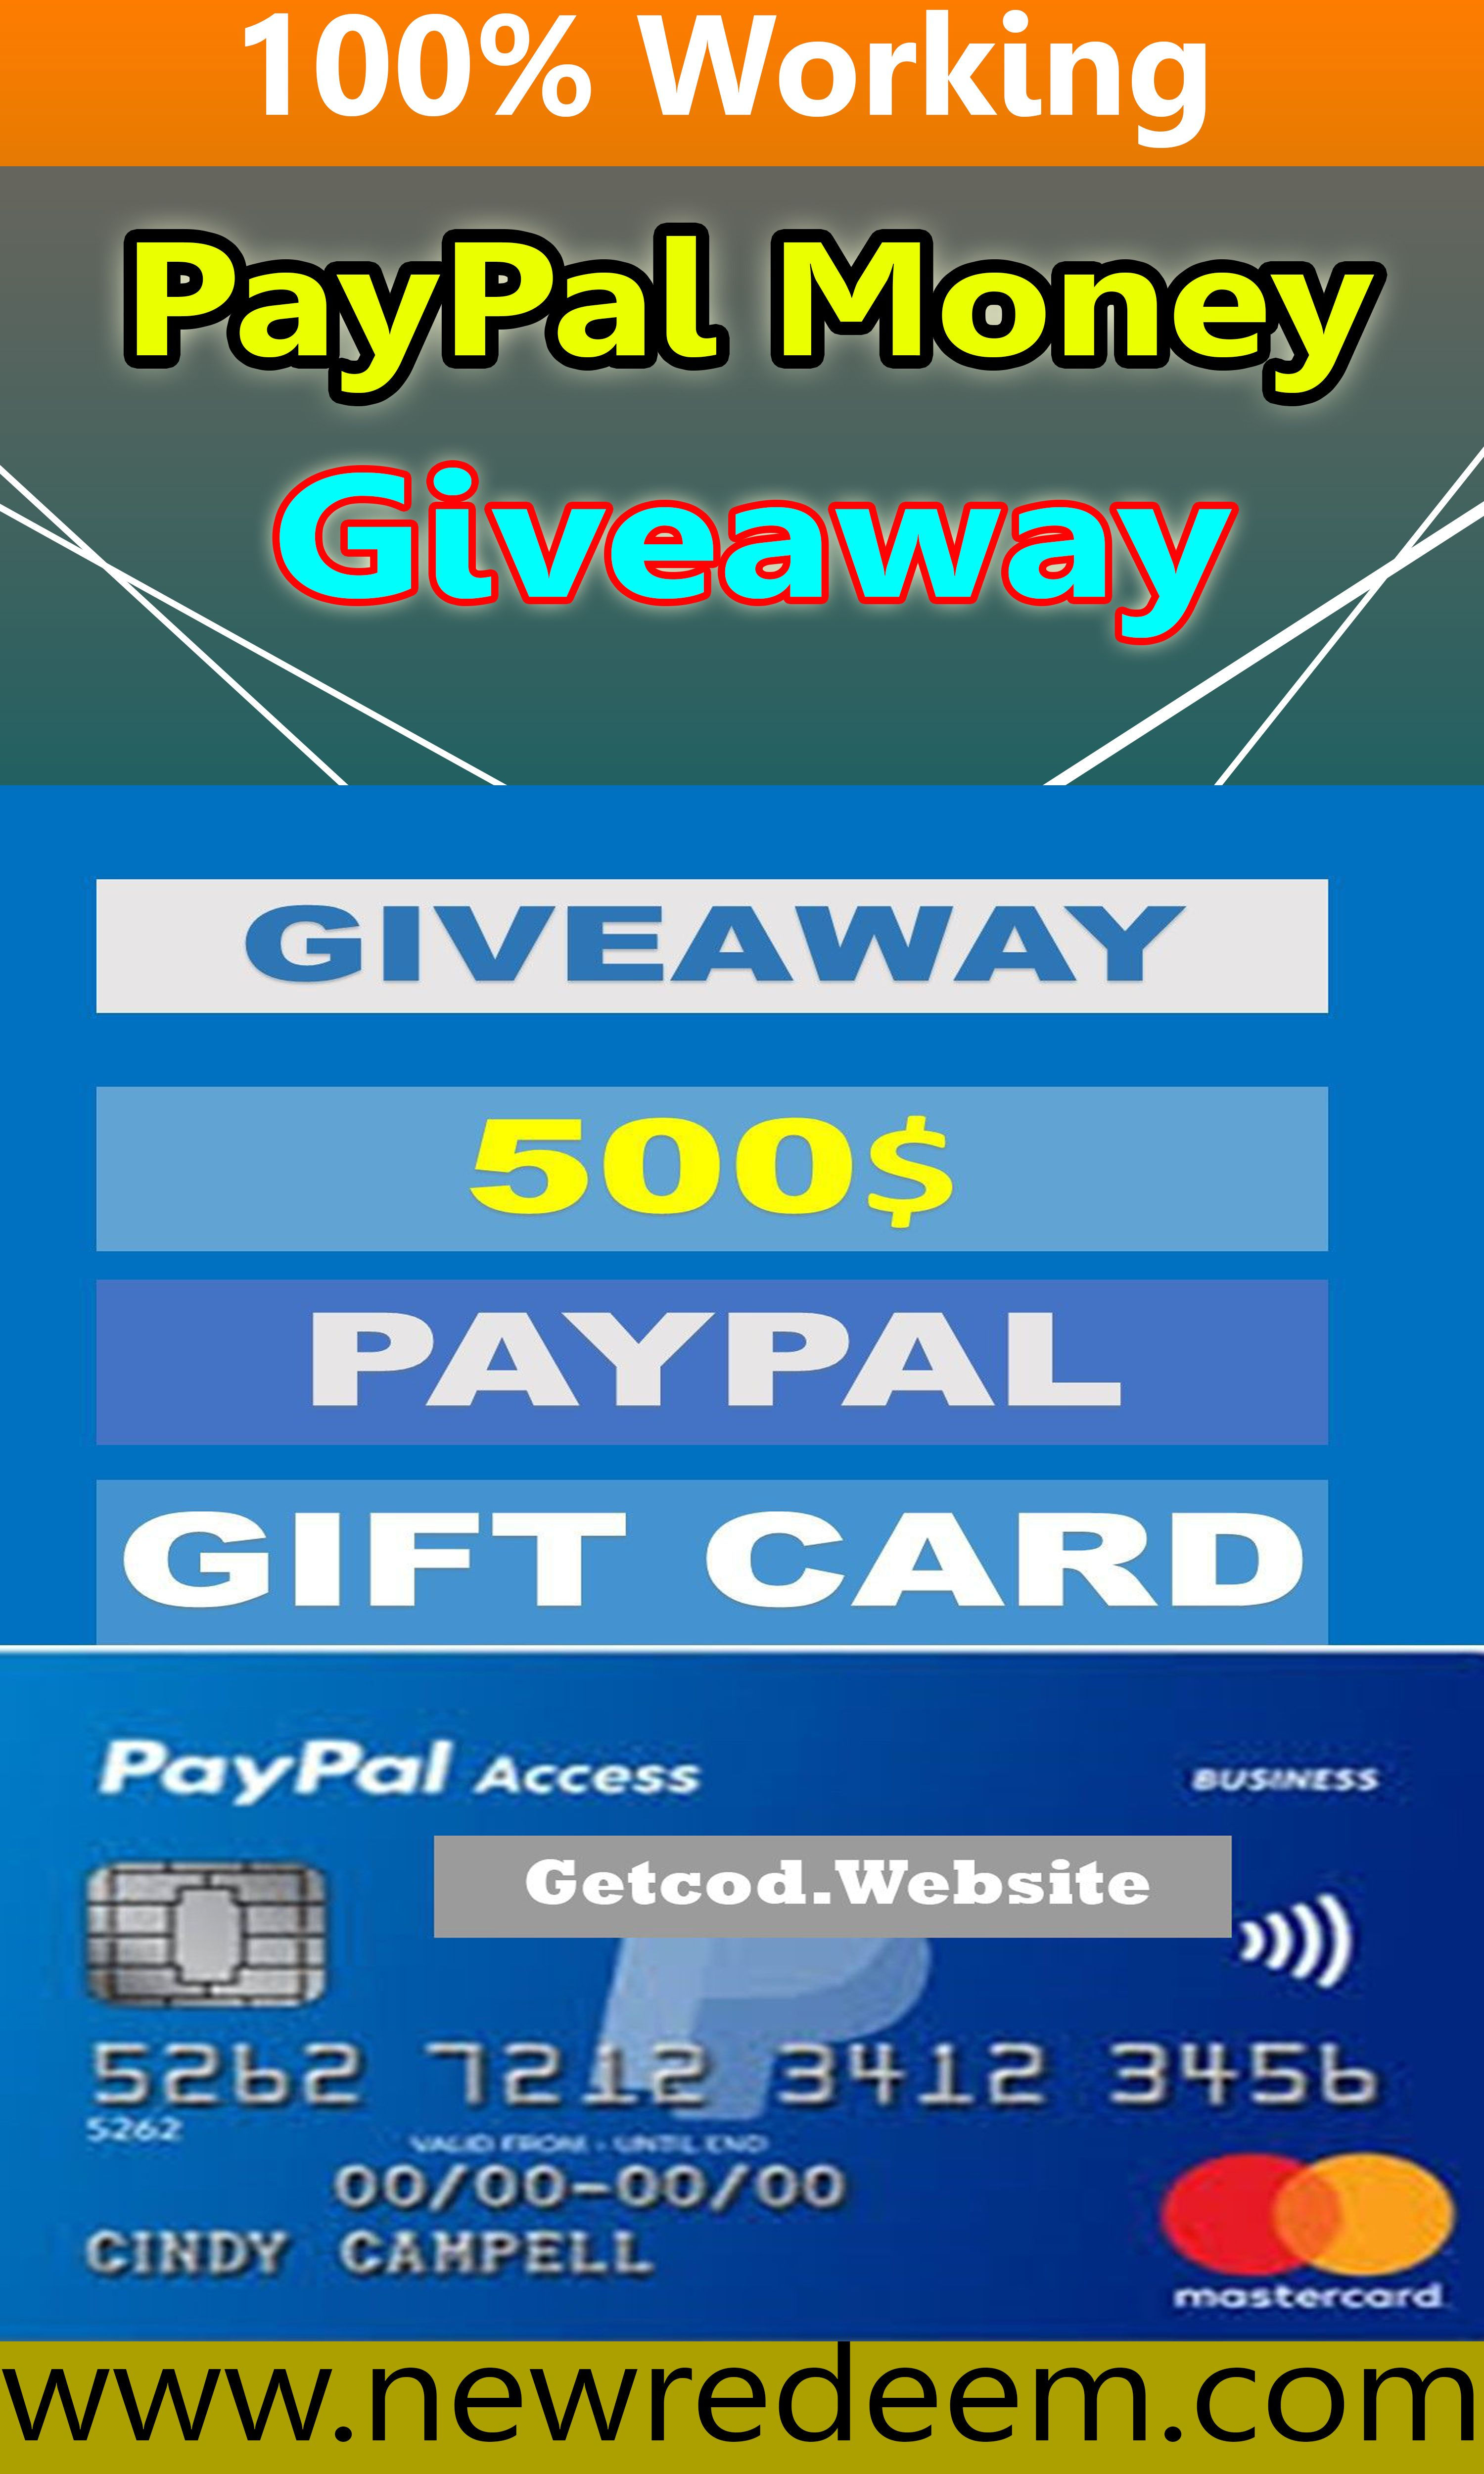 Free PayPal Gift Card Unused Codes Generator 2020.its very